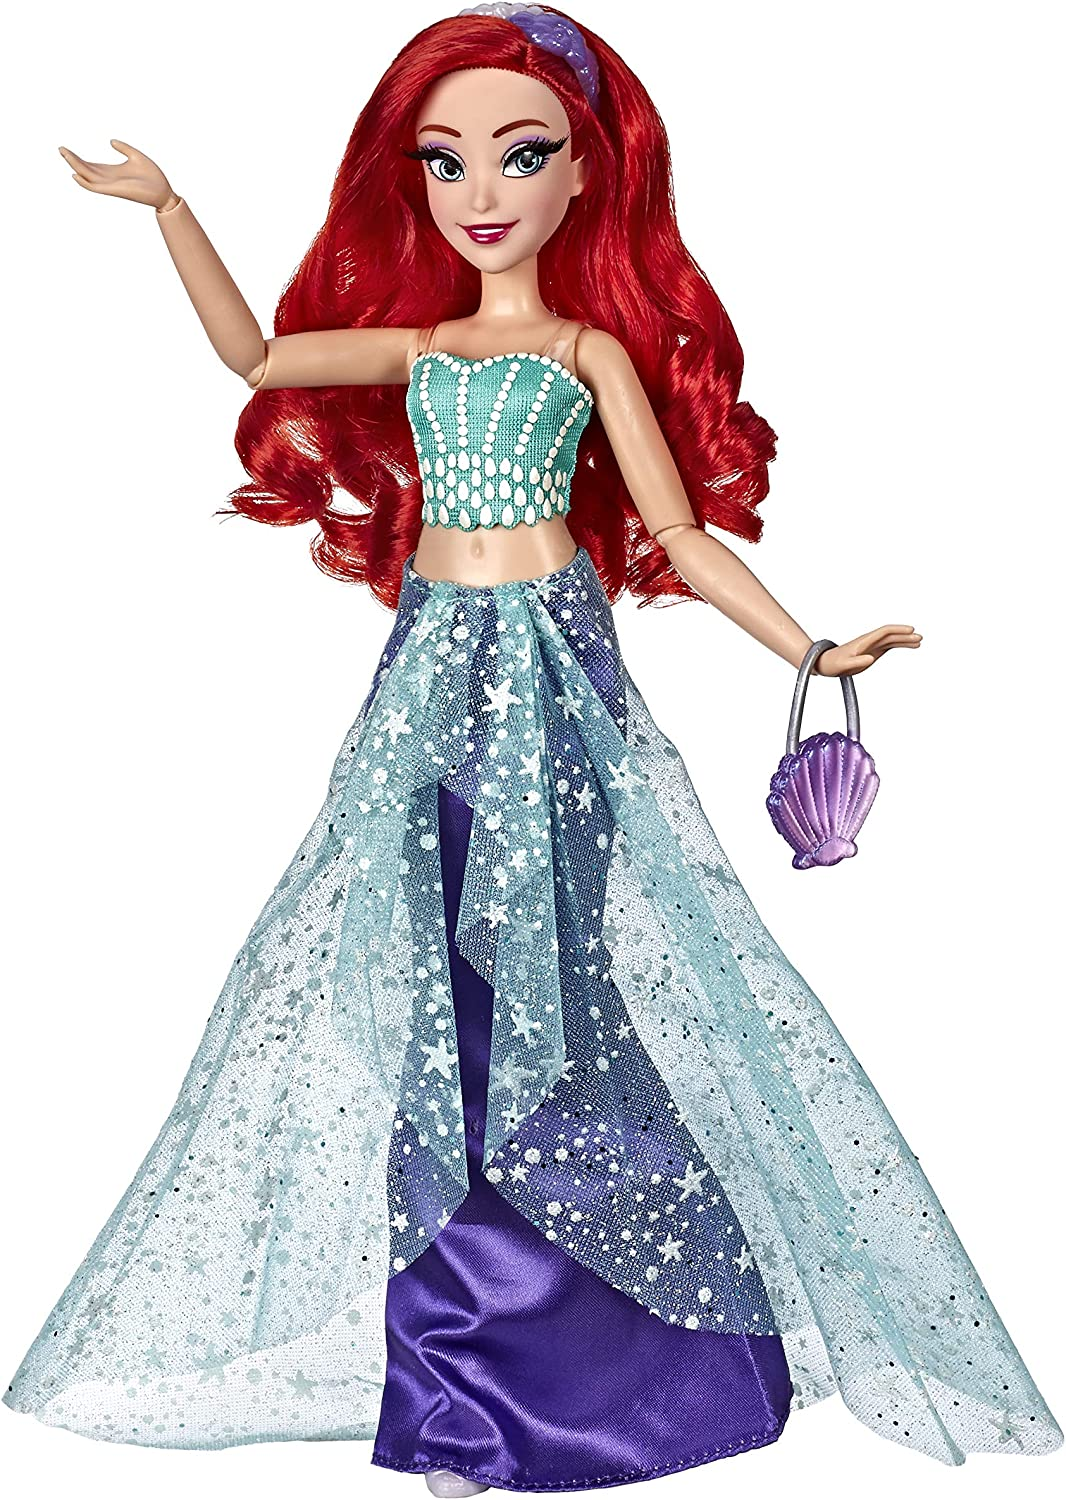 Amazon Com Disney Princess Style Series Ariel Doll In Contemporary Style With Purse Shoes Toys Games